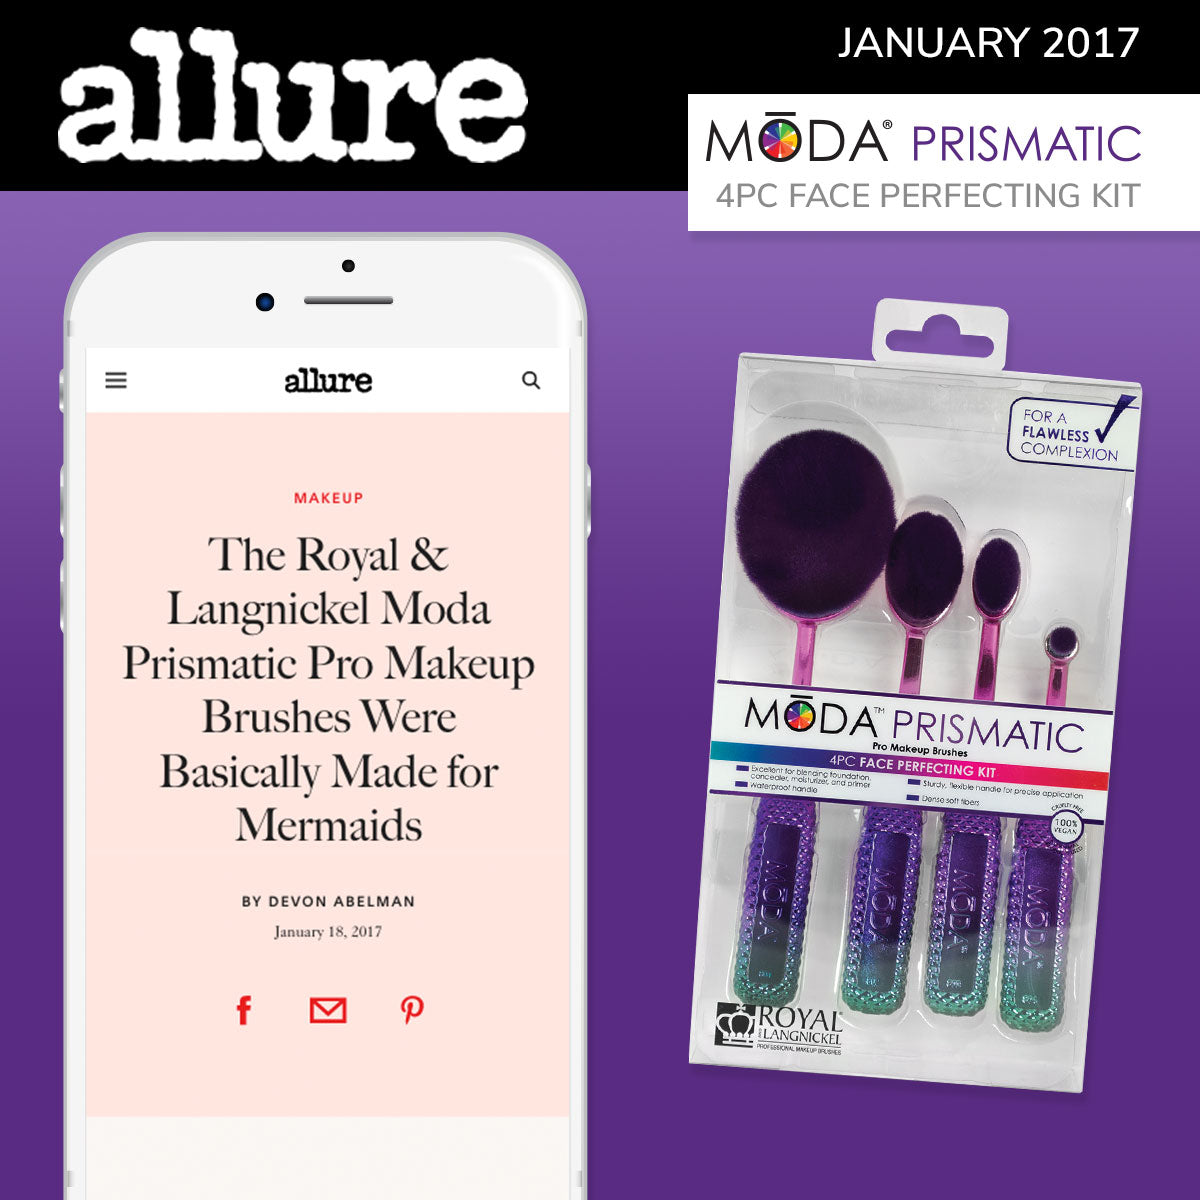 Allure Spotlight on our Moda Prismatic Face Perfecting Kit